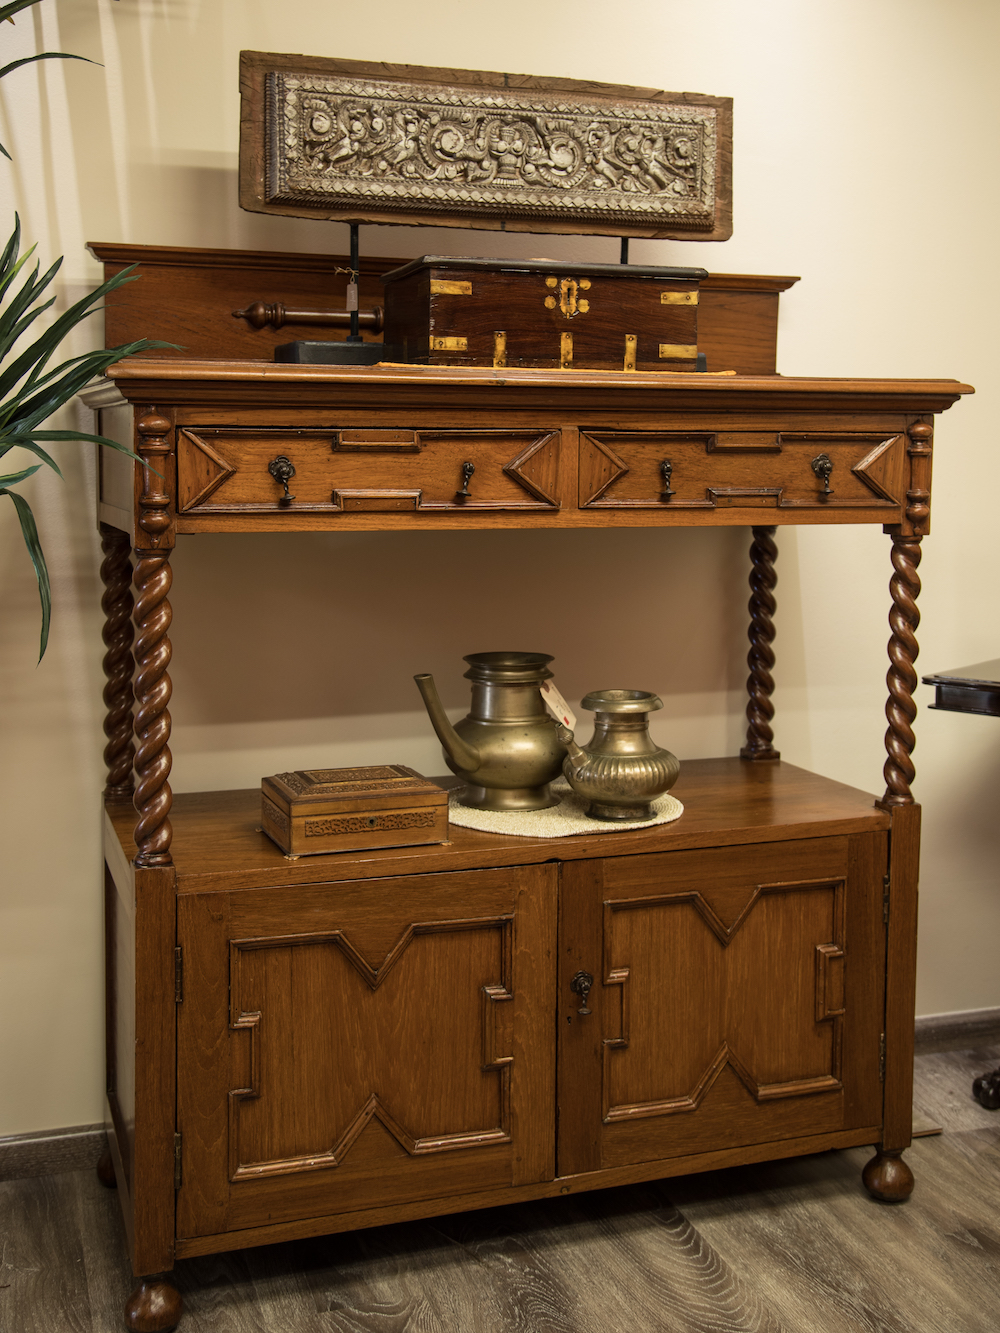 Jacobian Side Cabinet.JPG